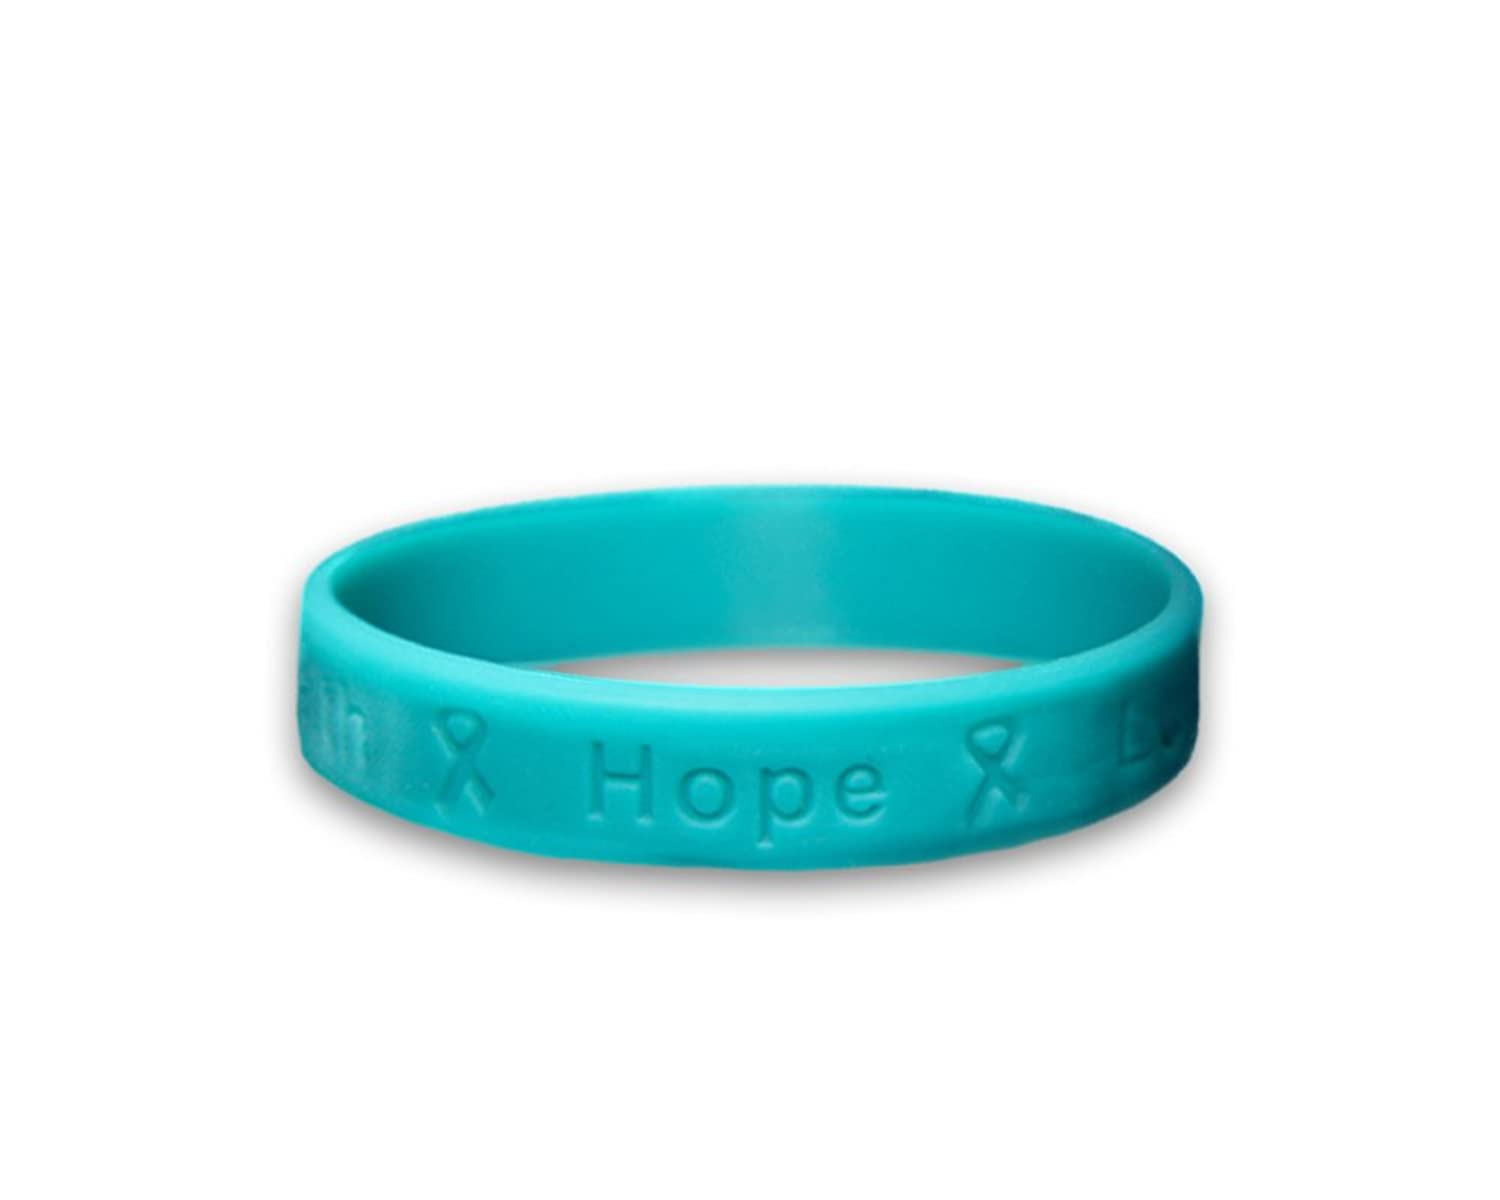 bullying ocd cancer scleroderma bracelet fragile ovarian disease pin polycystic kidney pos anti x awareness